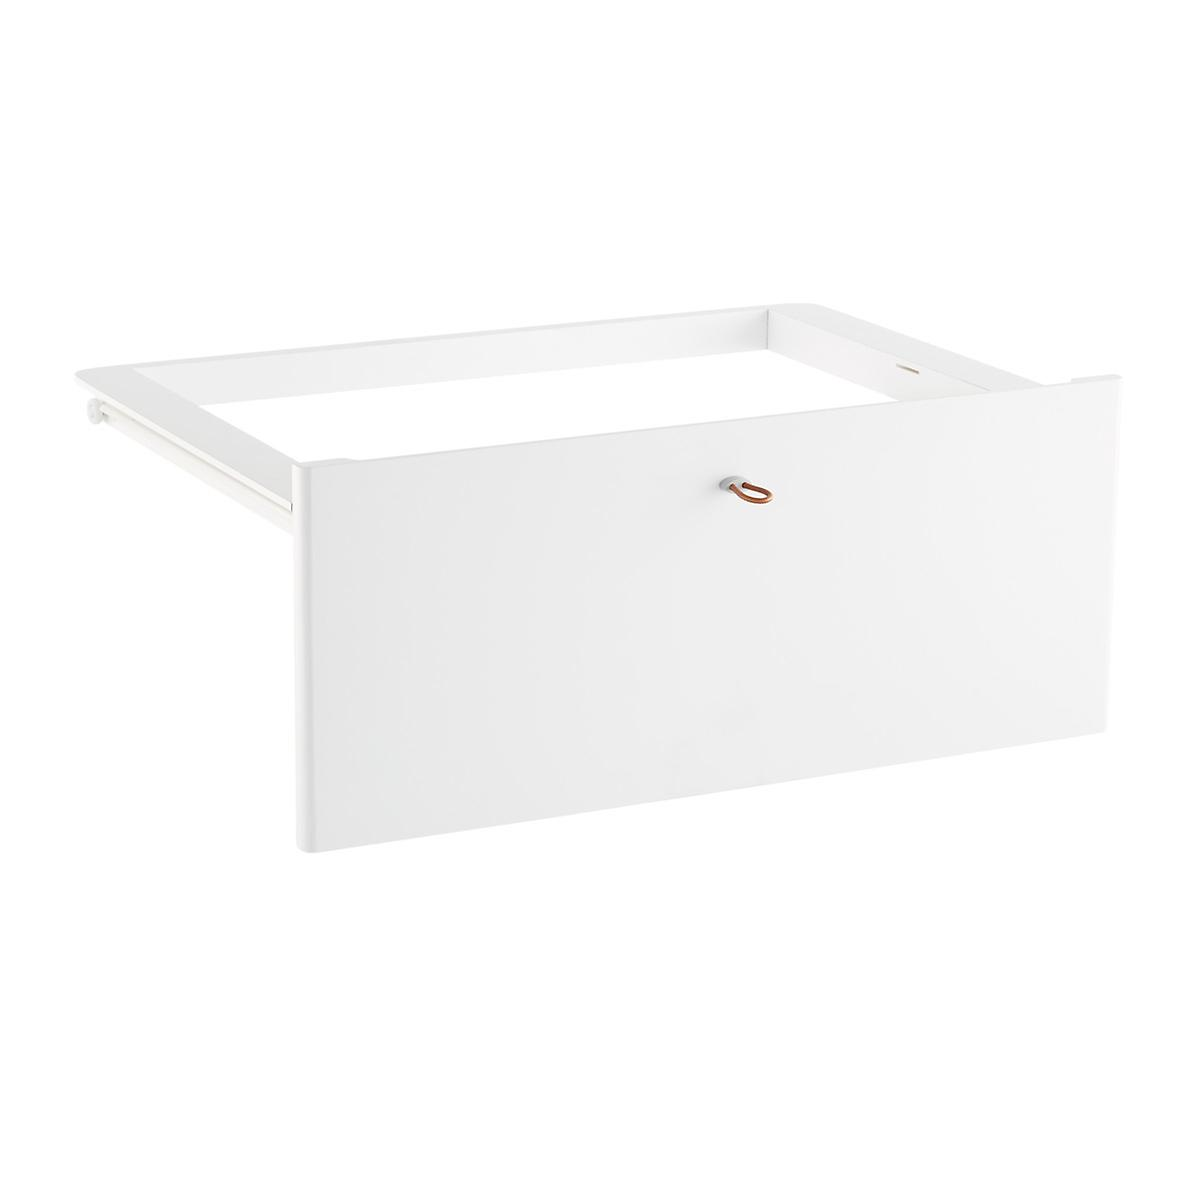 White Elfa Décor Drawer Frames & Fronts | The Container Store